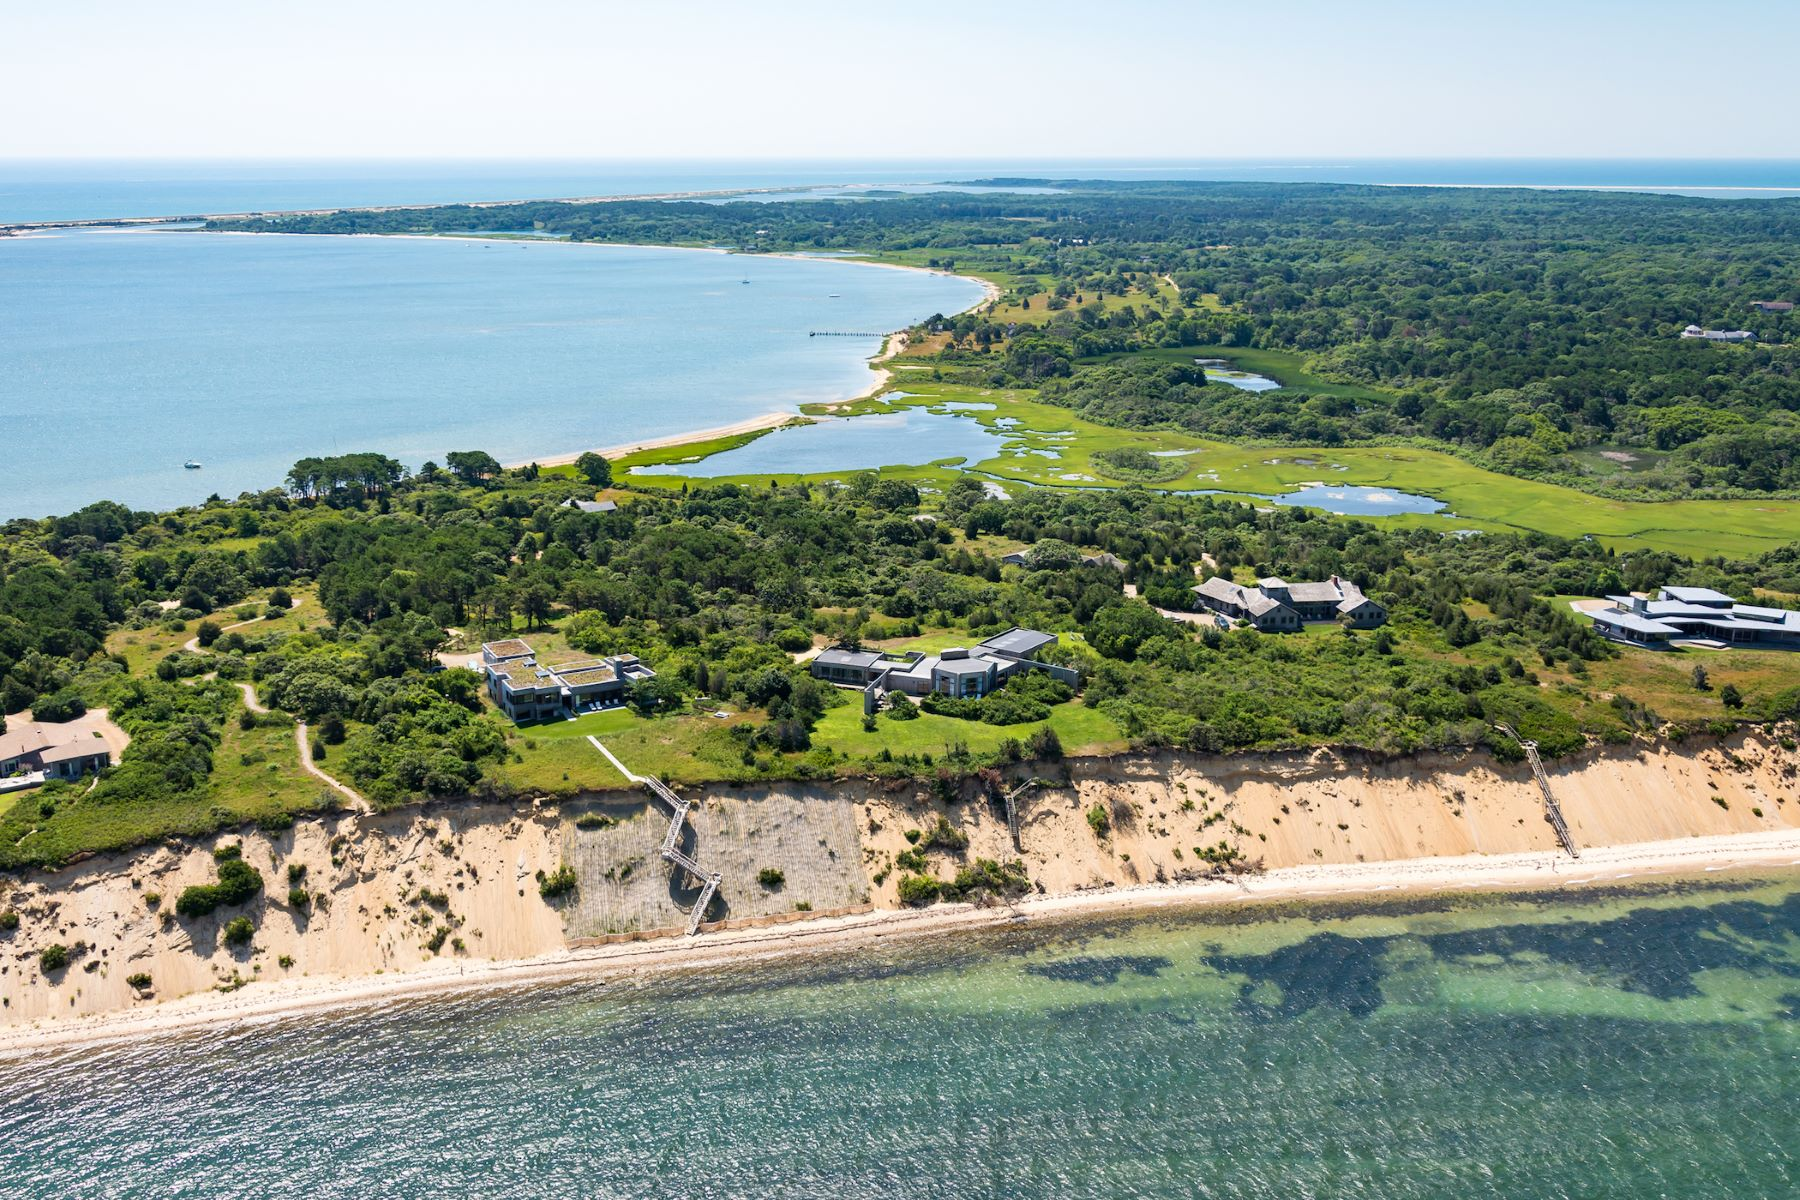 Single Family Home for Sale at Waterfront perfection on Martha's Vineyard 23 North Neck Road Edgartown, 02539 United States